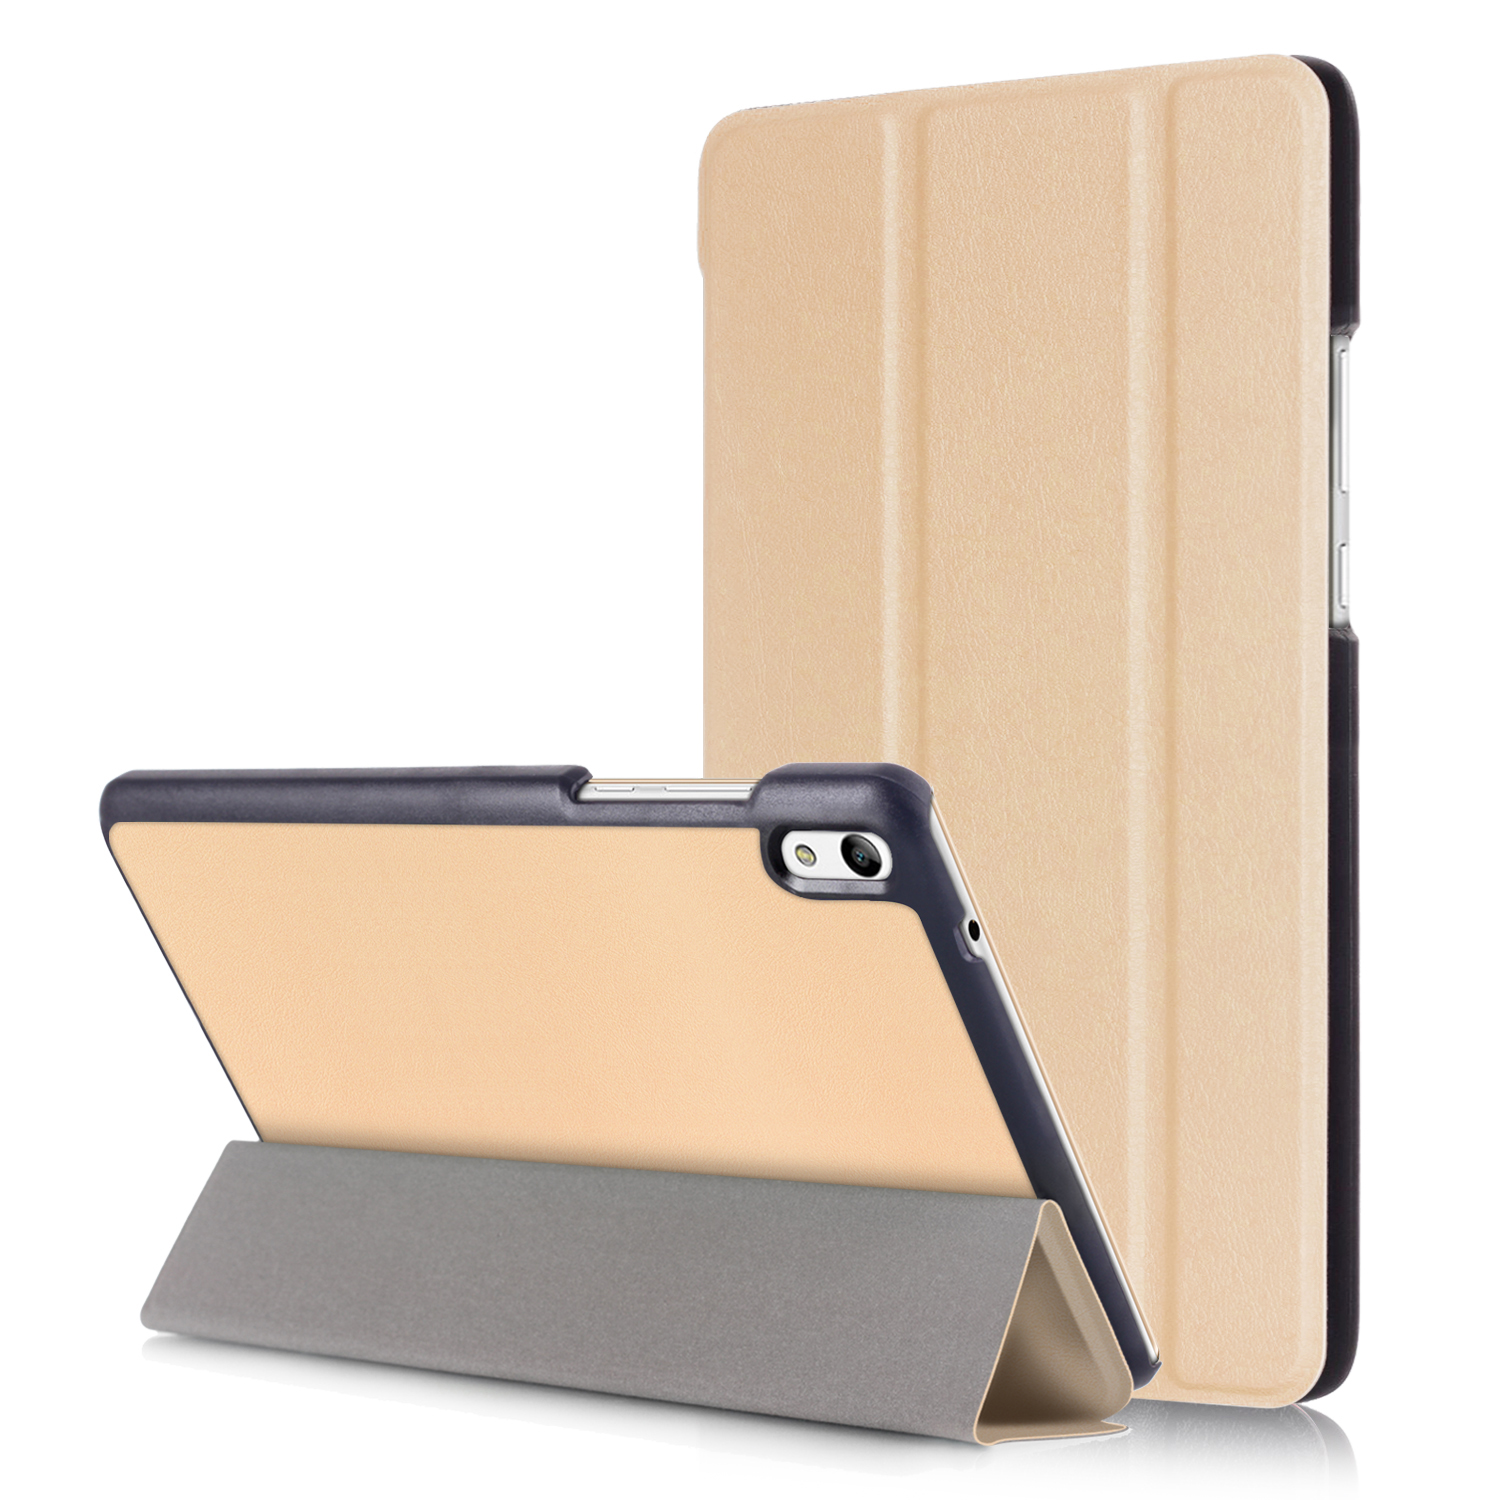 Stand Flip Cases Protective Cover for Huawei Honor Tab 2 JDN-AL00/W09 8.0 inch Android tablet case+Screen Protector Film+Stylus